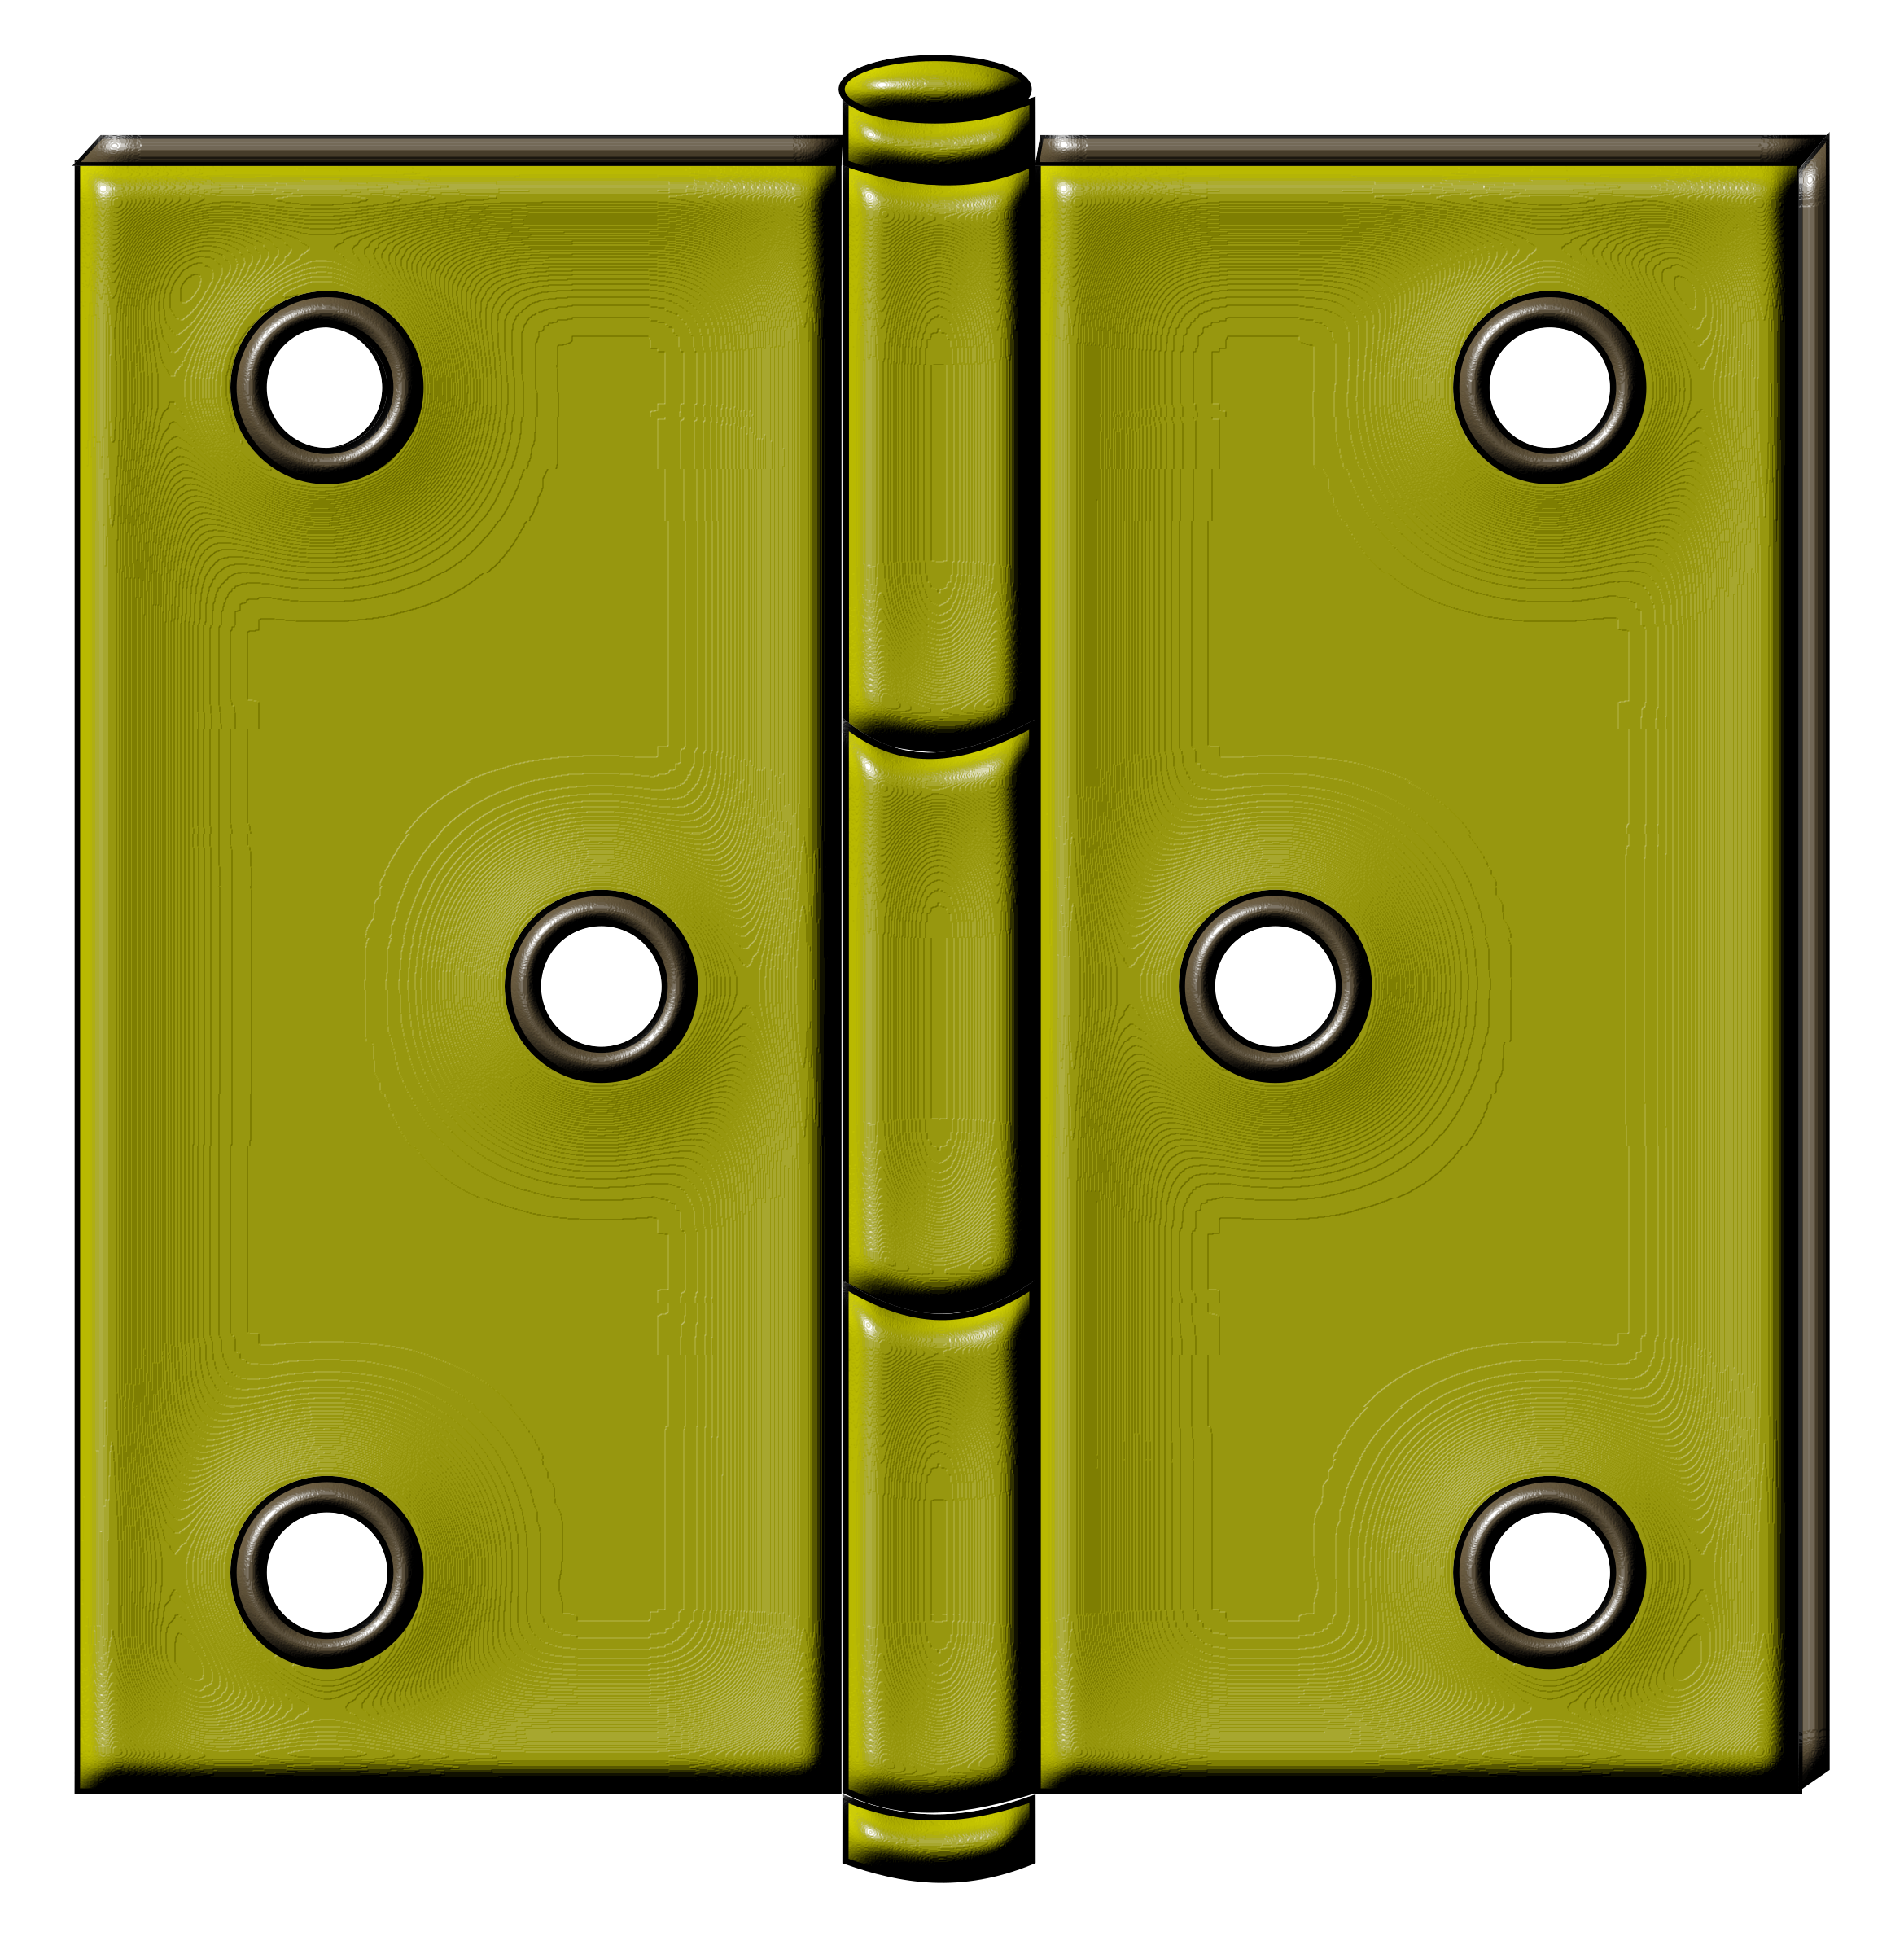 Brass Hinge by algotruneman